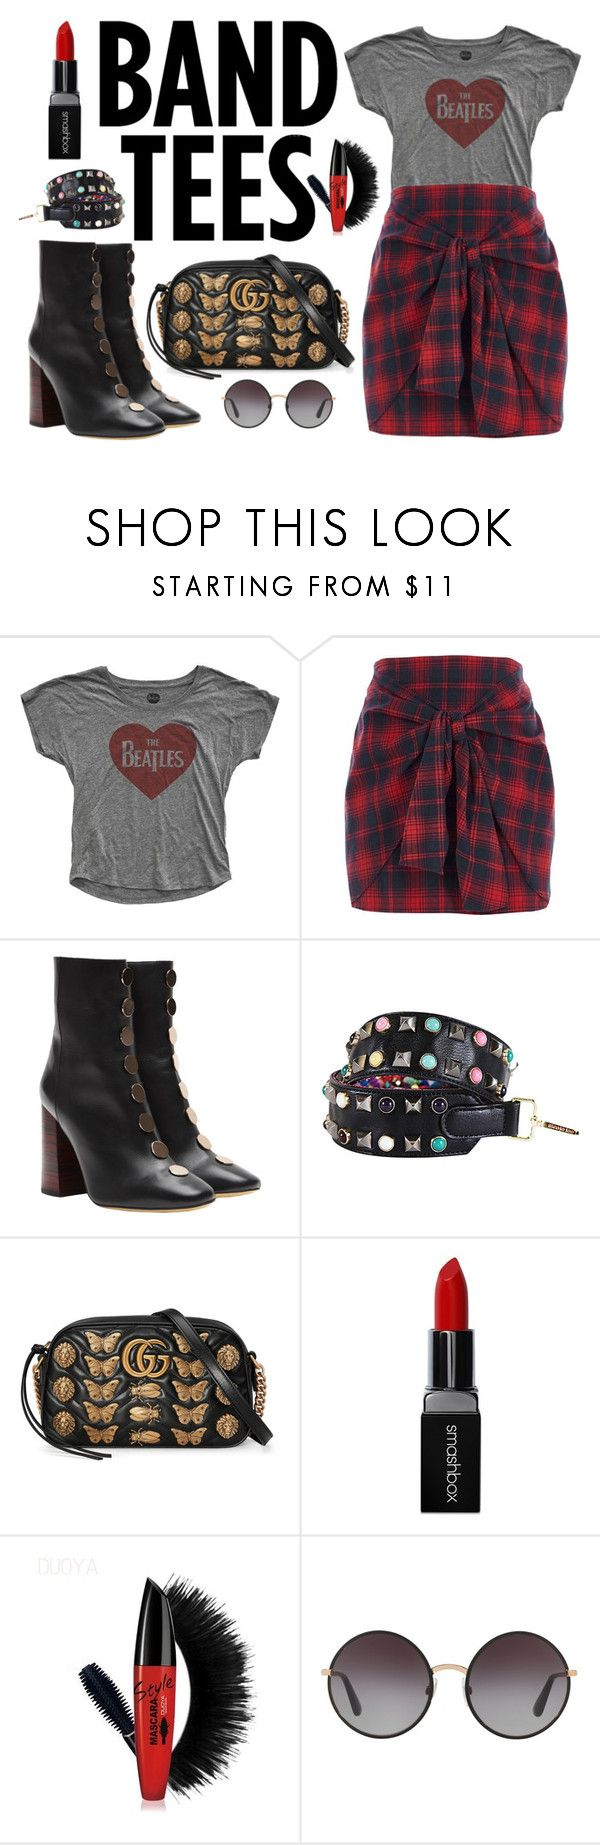 """""""Beatles Band Tee"""" by katebillingsley on Polyvore featuring River Island, E L L E R Y, Nicole Lee, Gucci, Smashbox, Dolce&Gabbana, Studs, Beatles, bandtees and rockstyle"""